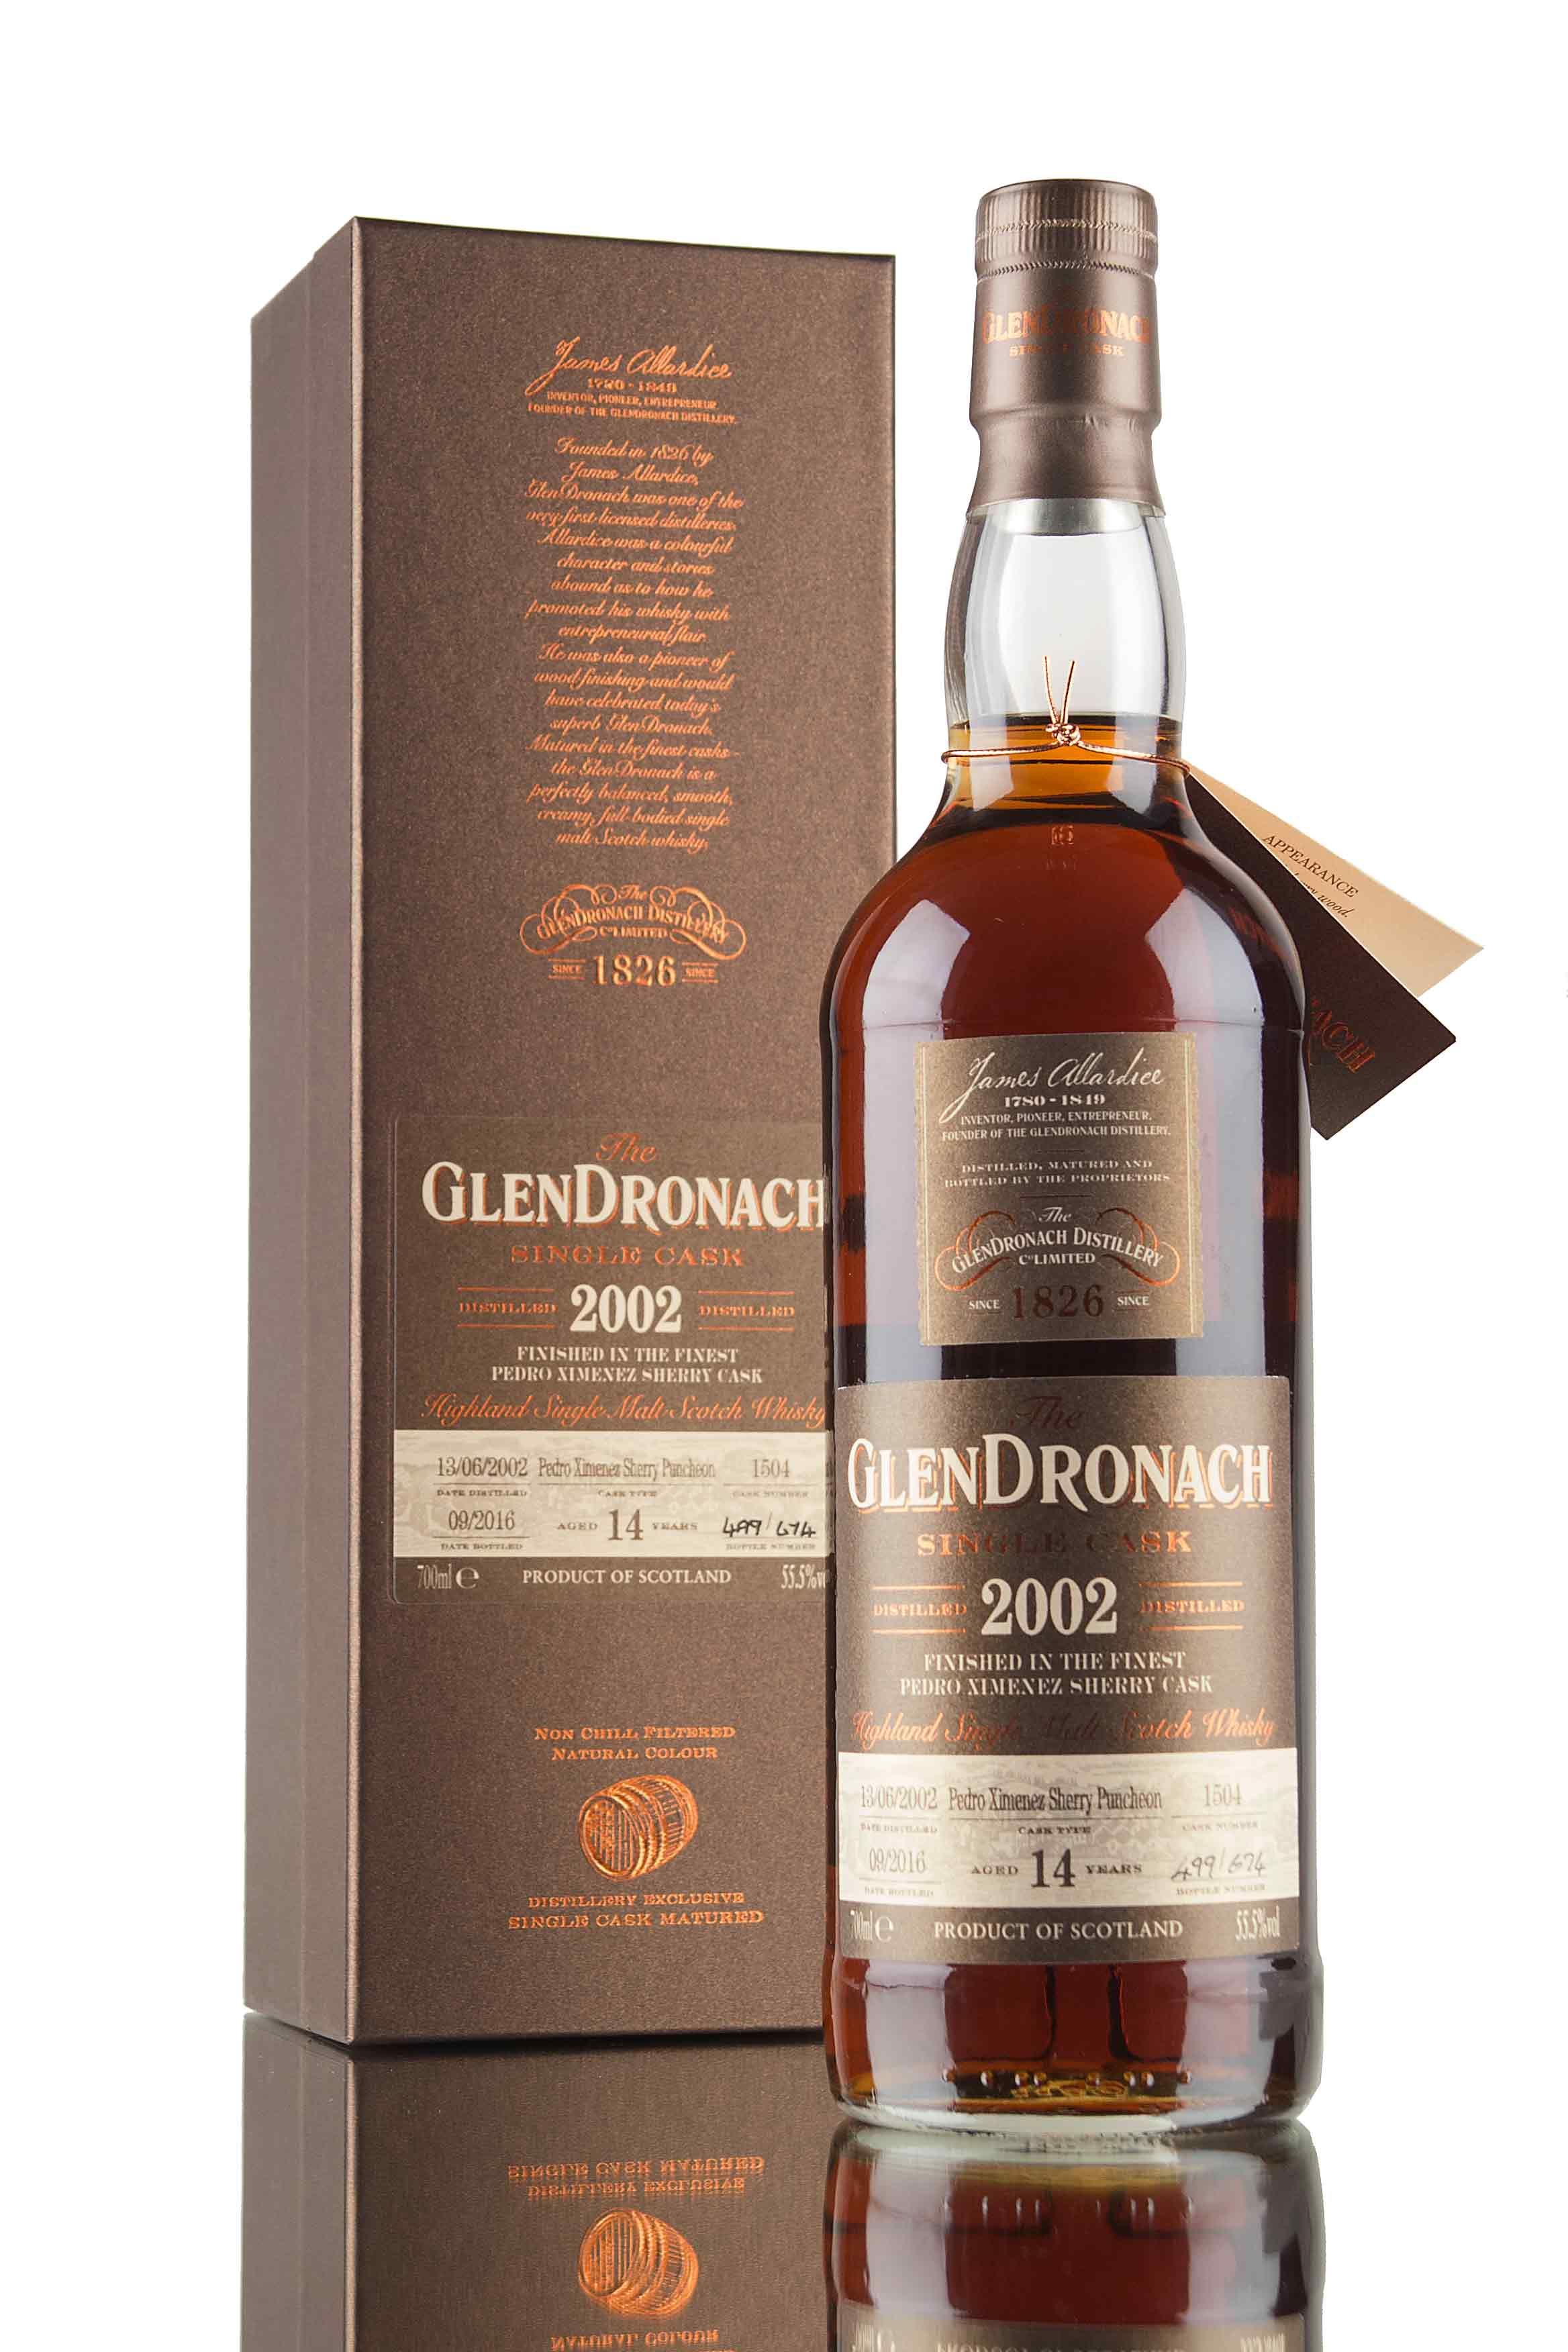 GlenDronach 14 Year Old - 2002 / Single Cask 1504 / Batch 14